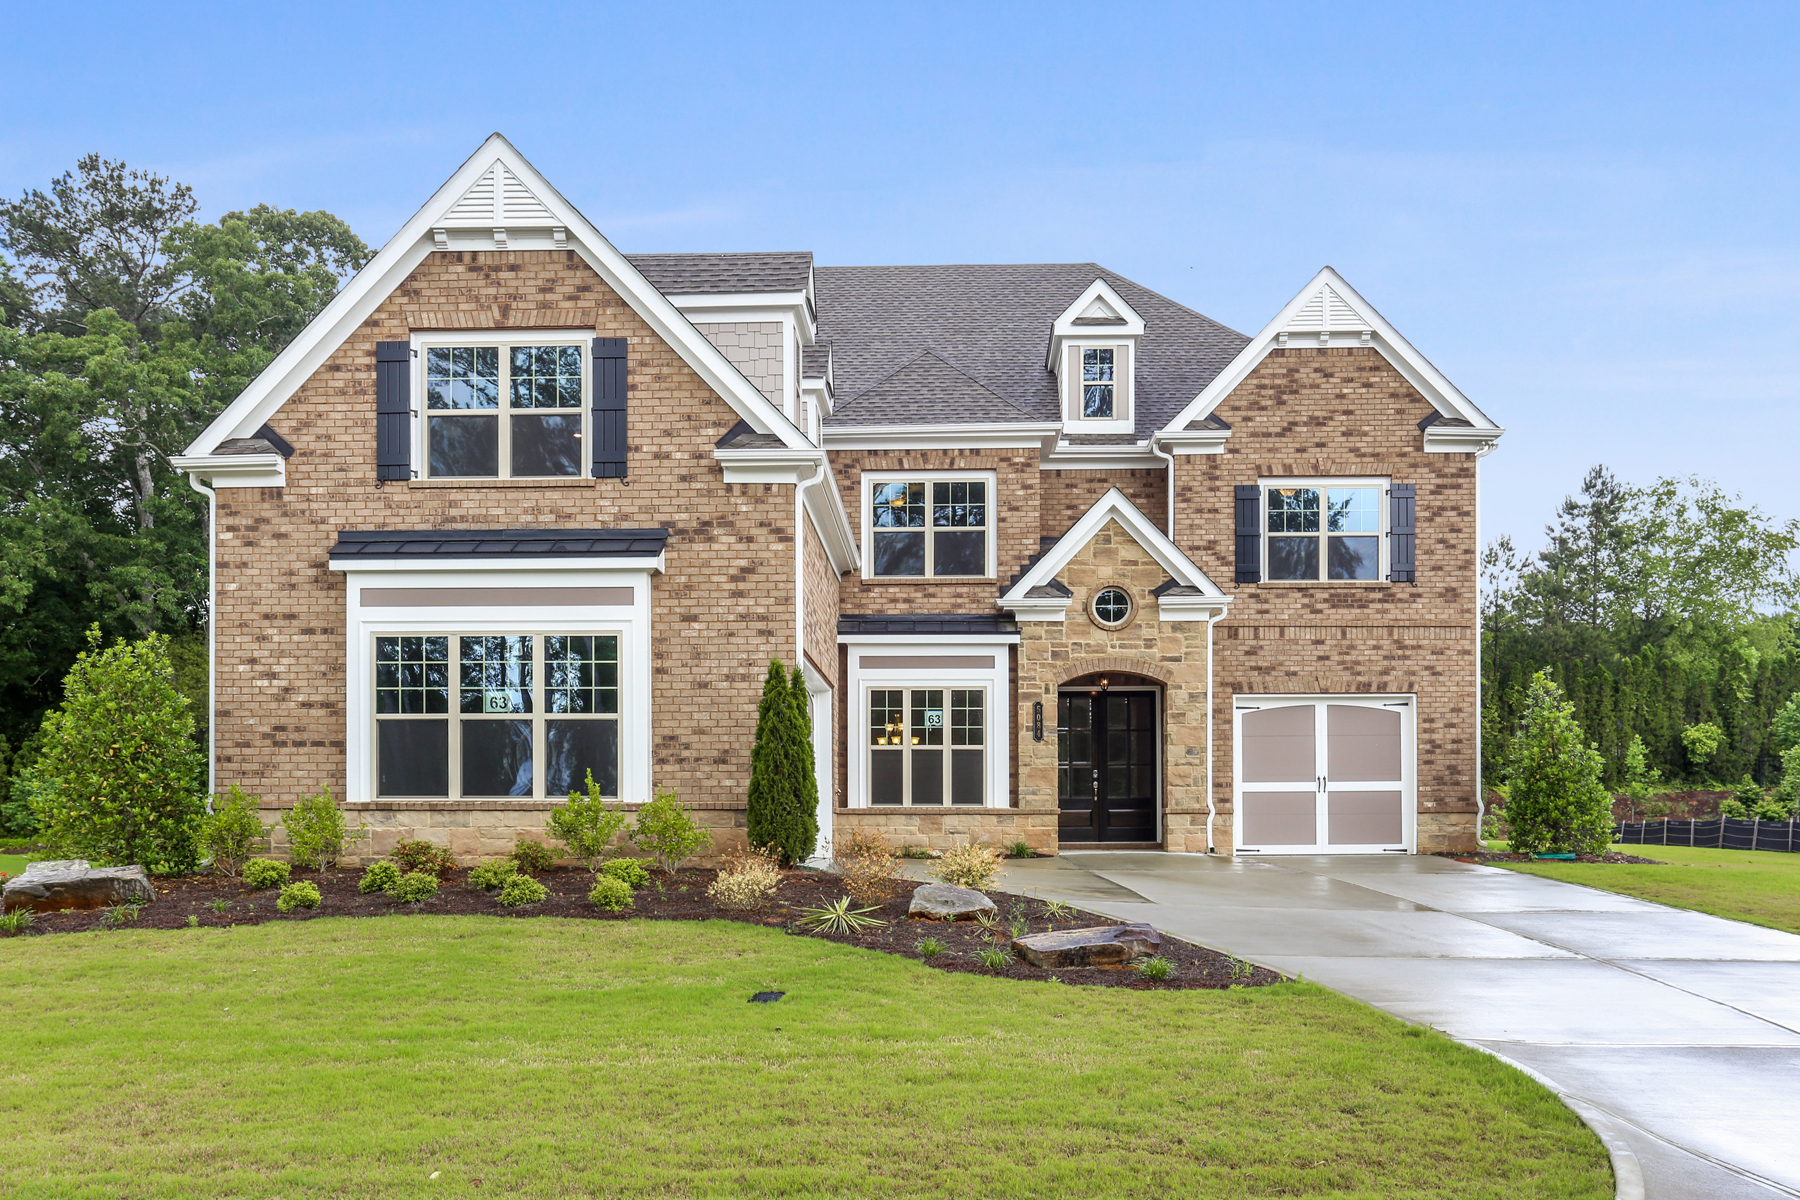 Single Family Home for Sale at Beautiful New Home In The Heart Of John's Creek On The Chattahoochee River! 5084 Dinant Drive Johns Creek, Georgia 30022 United States